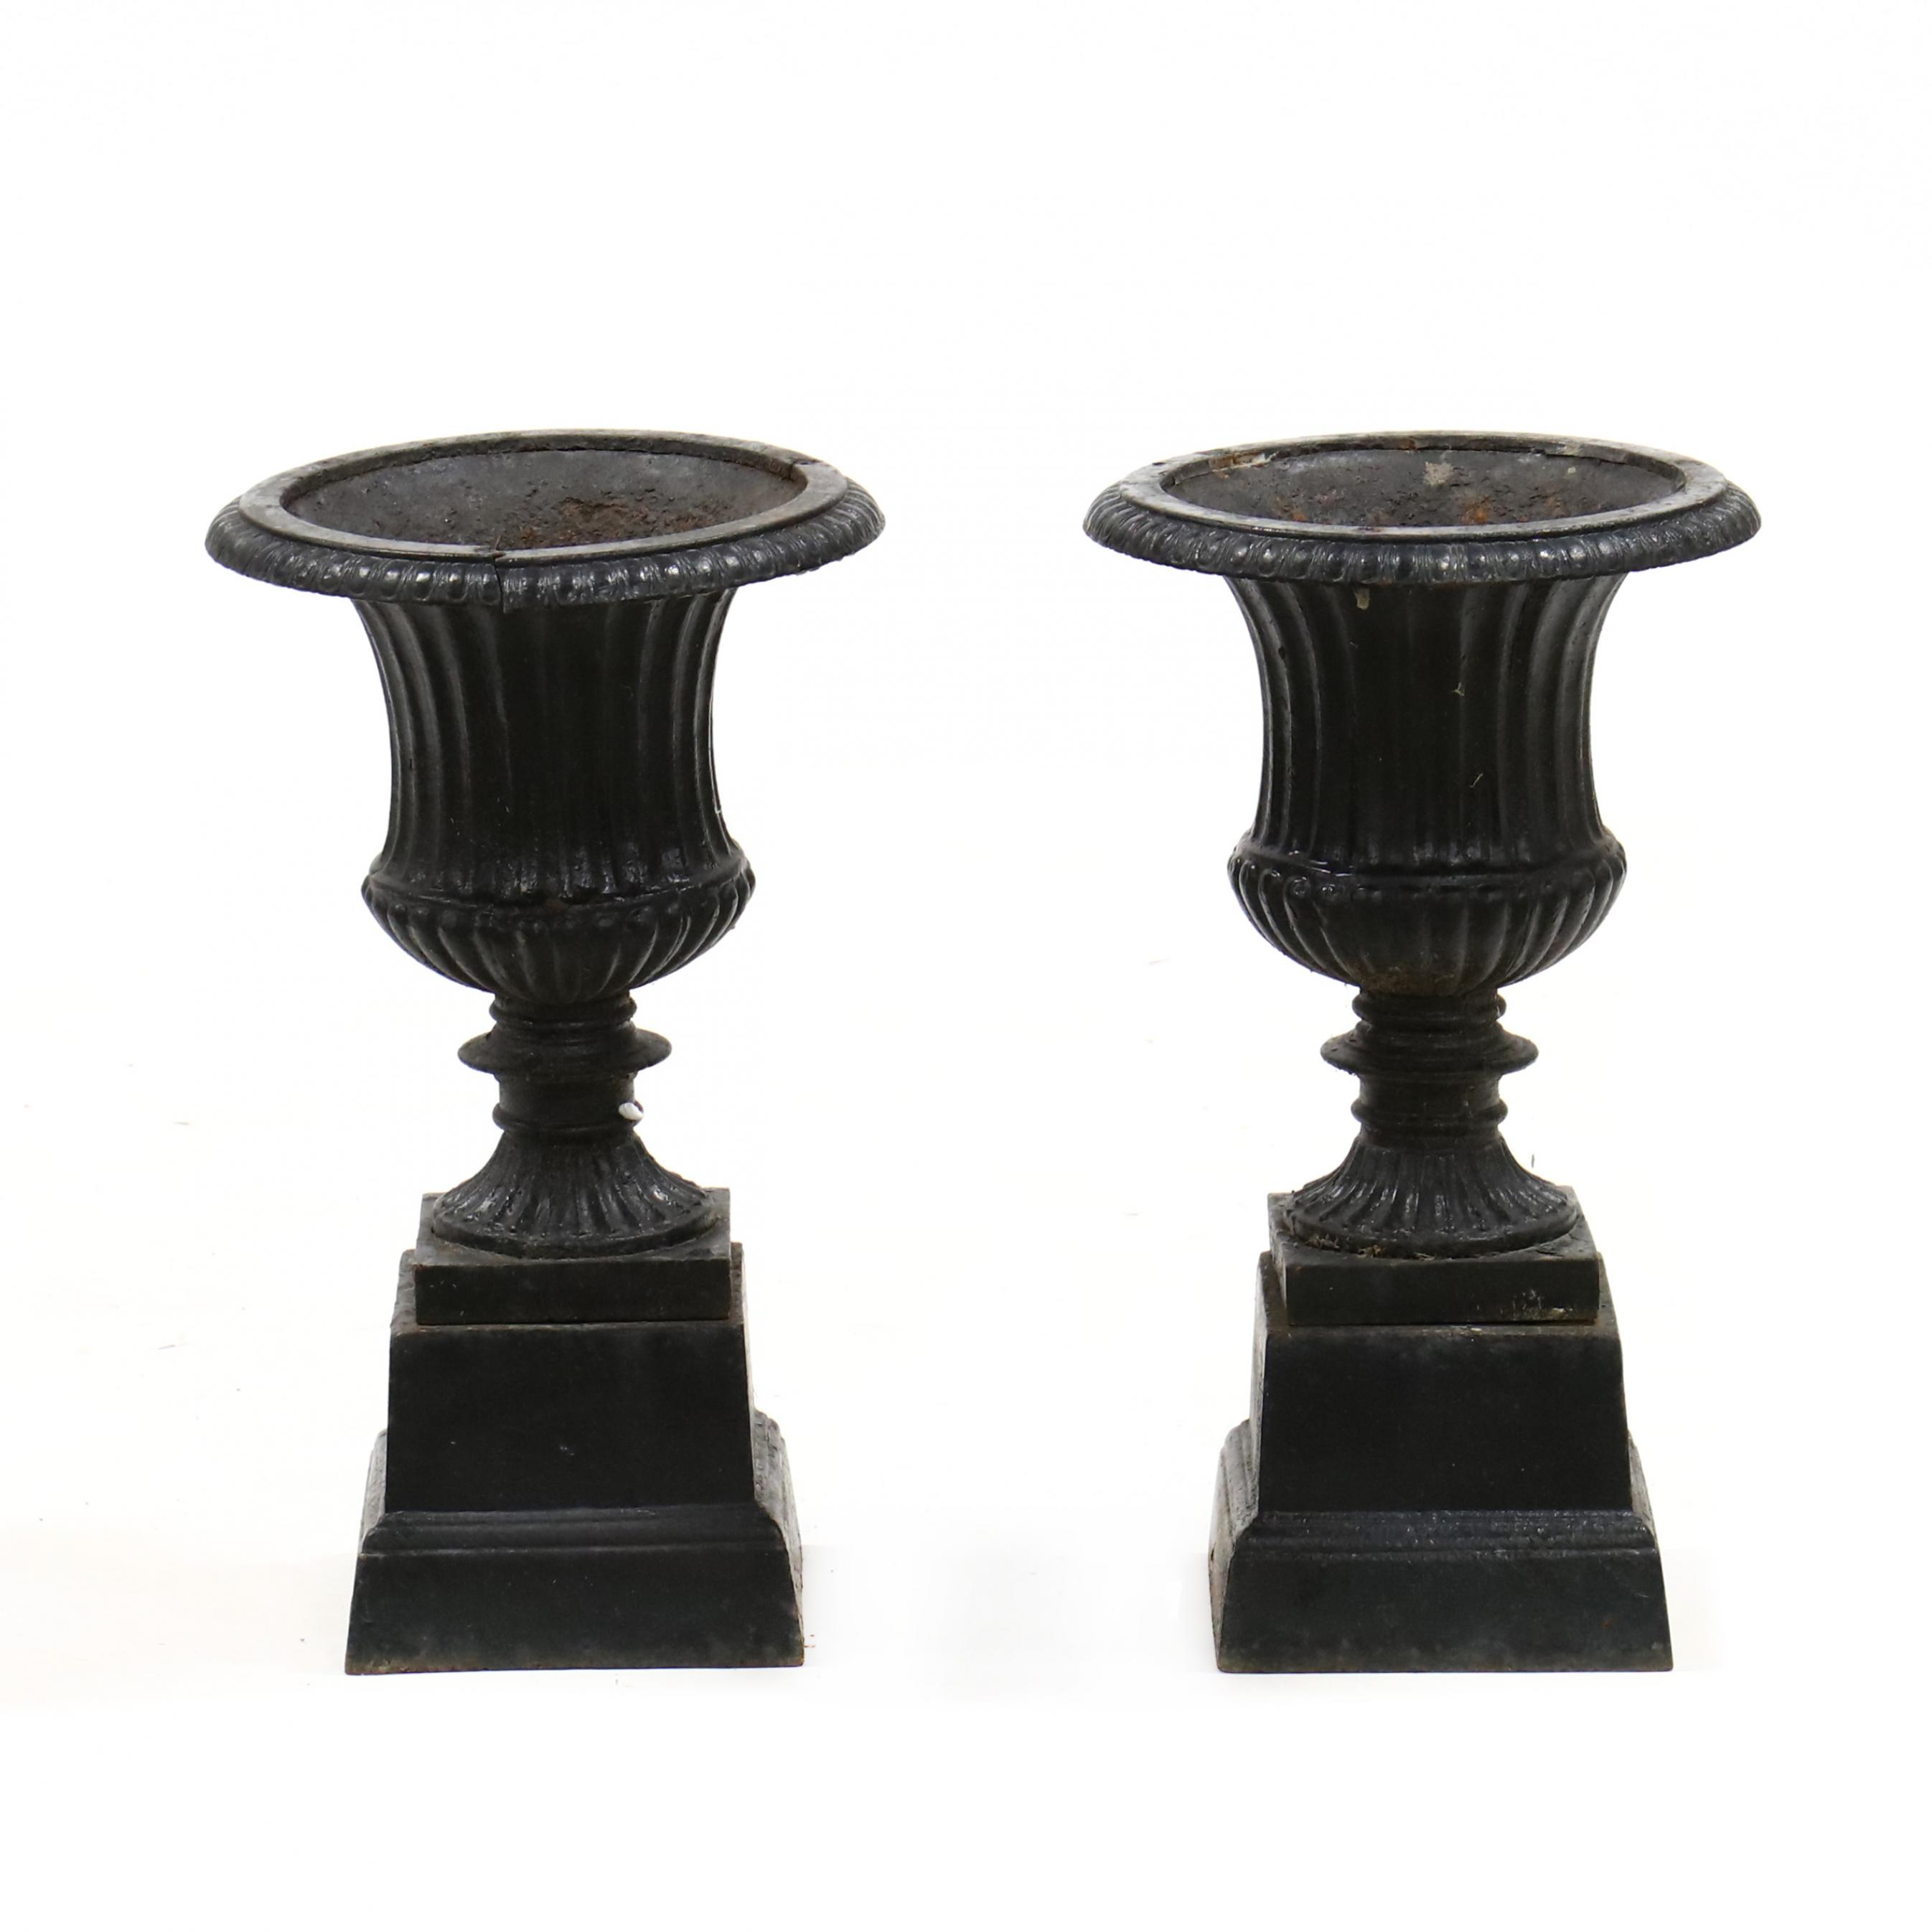 pair-of-vintage-diminutive-cast-iron-urns-on-stands